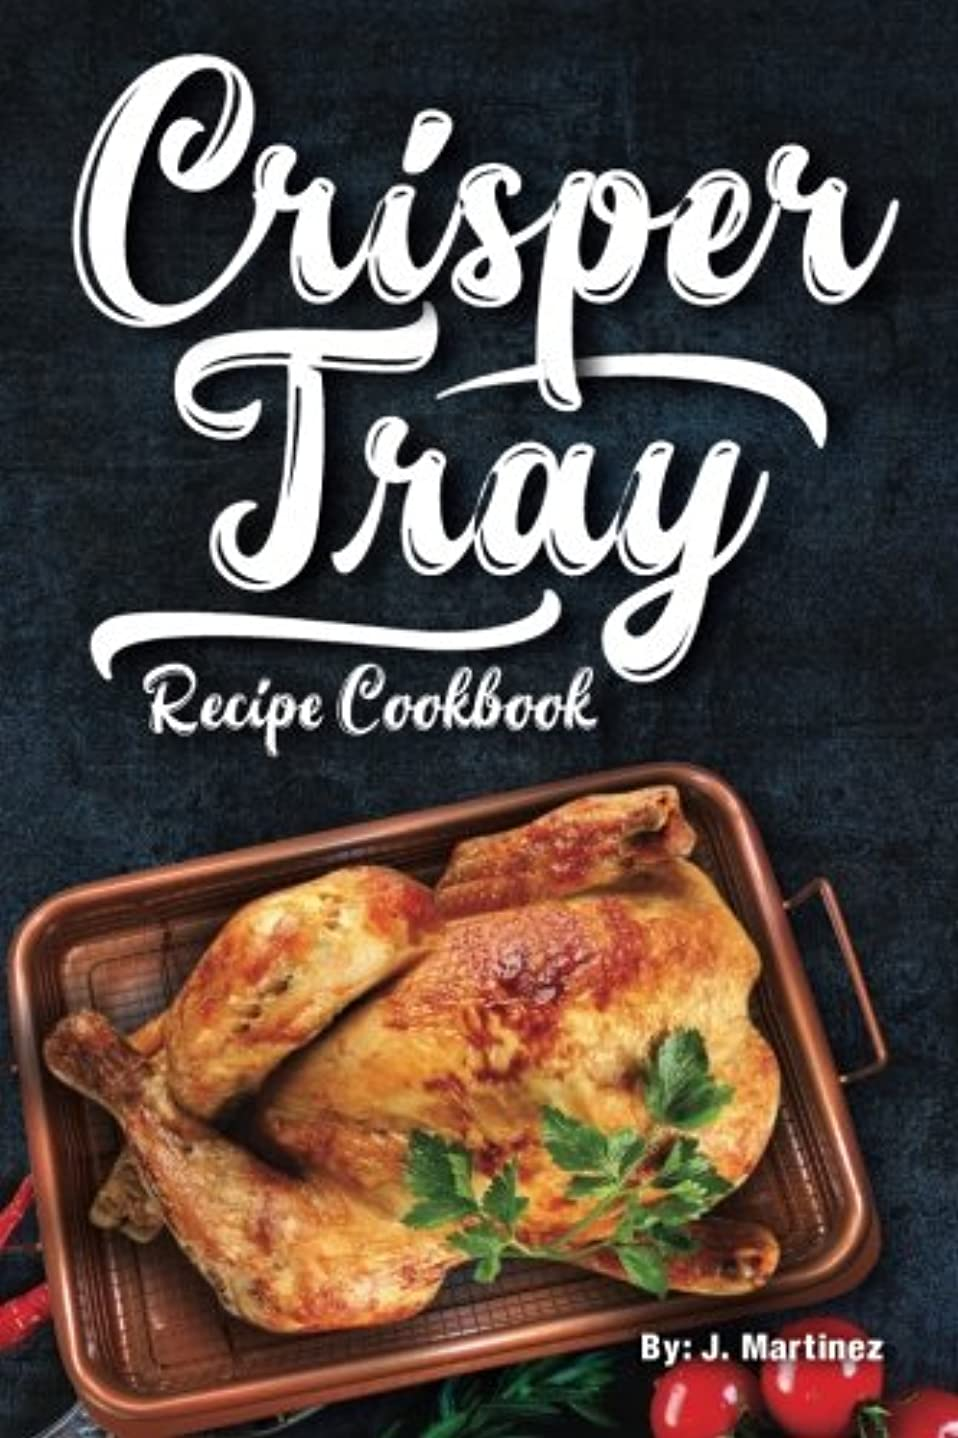 天皇快適食器棚Crisper Tray Recipe Cookbook: Newest Complete Revolutionary Nonstick Copper Basket Air Fryer Style Cookware. Works Magic on Any Grill, Stovetop or in Your Oven the Healthy Way! (Crispy Creations)